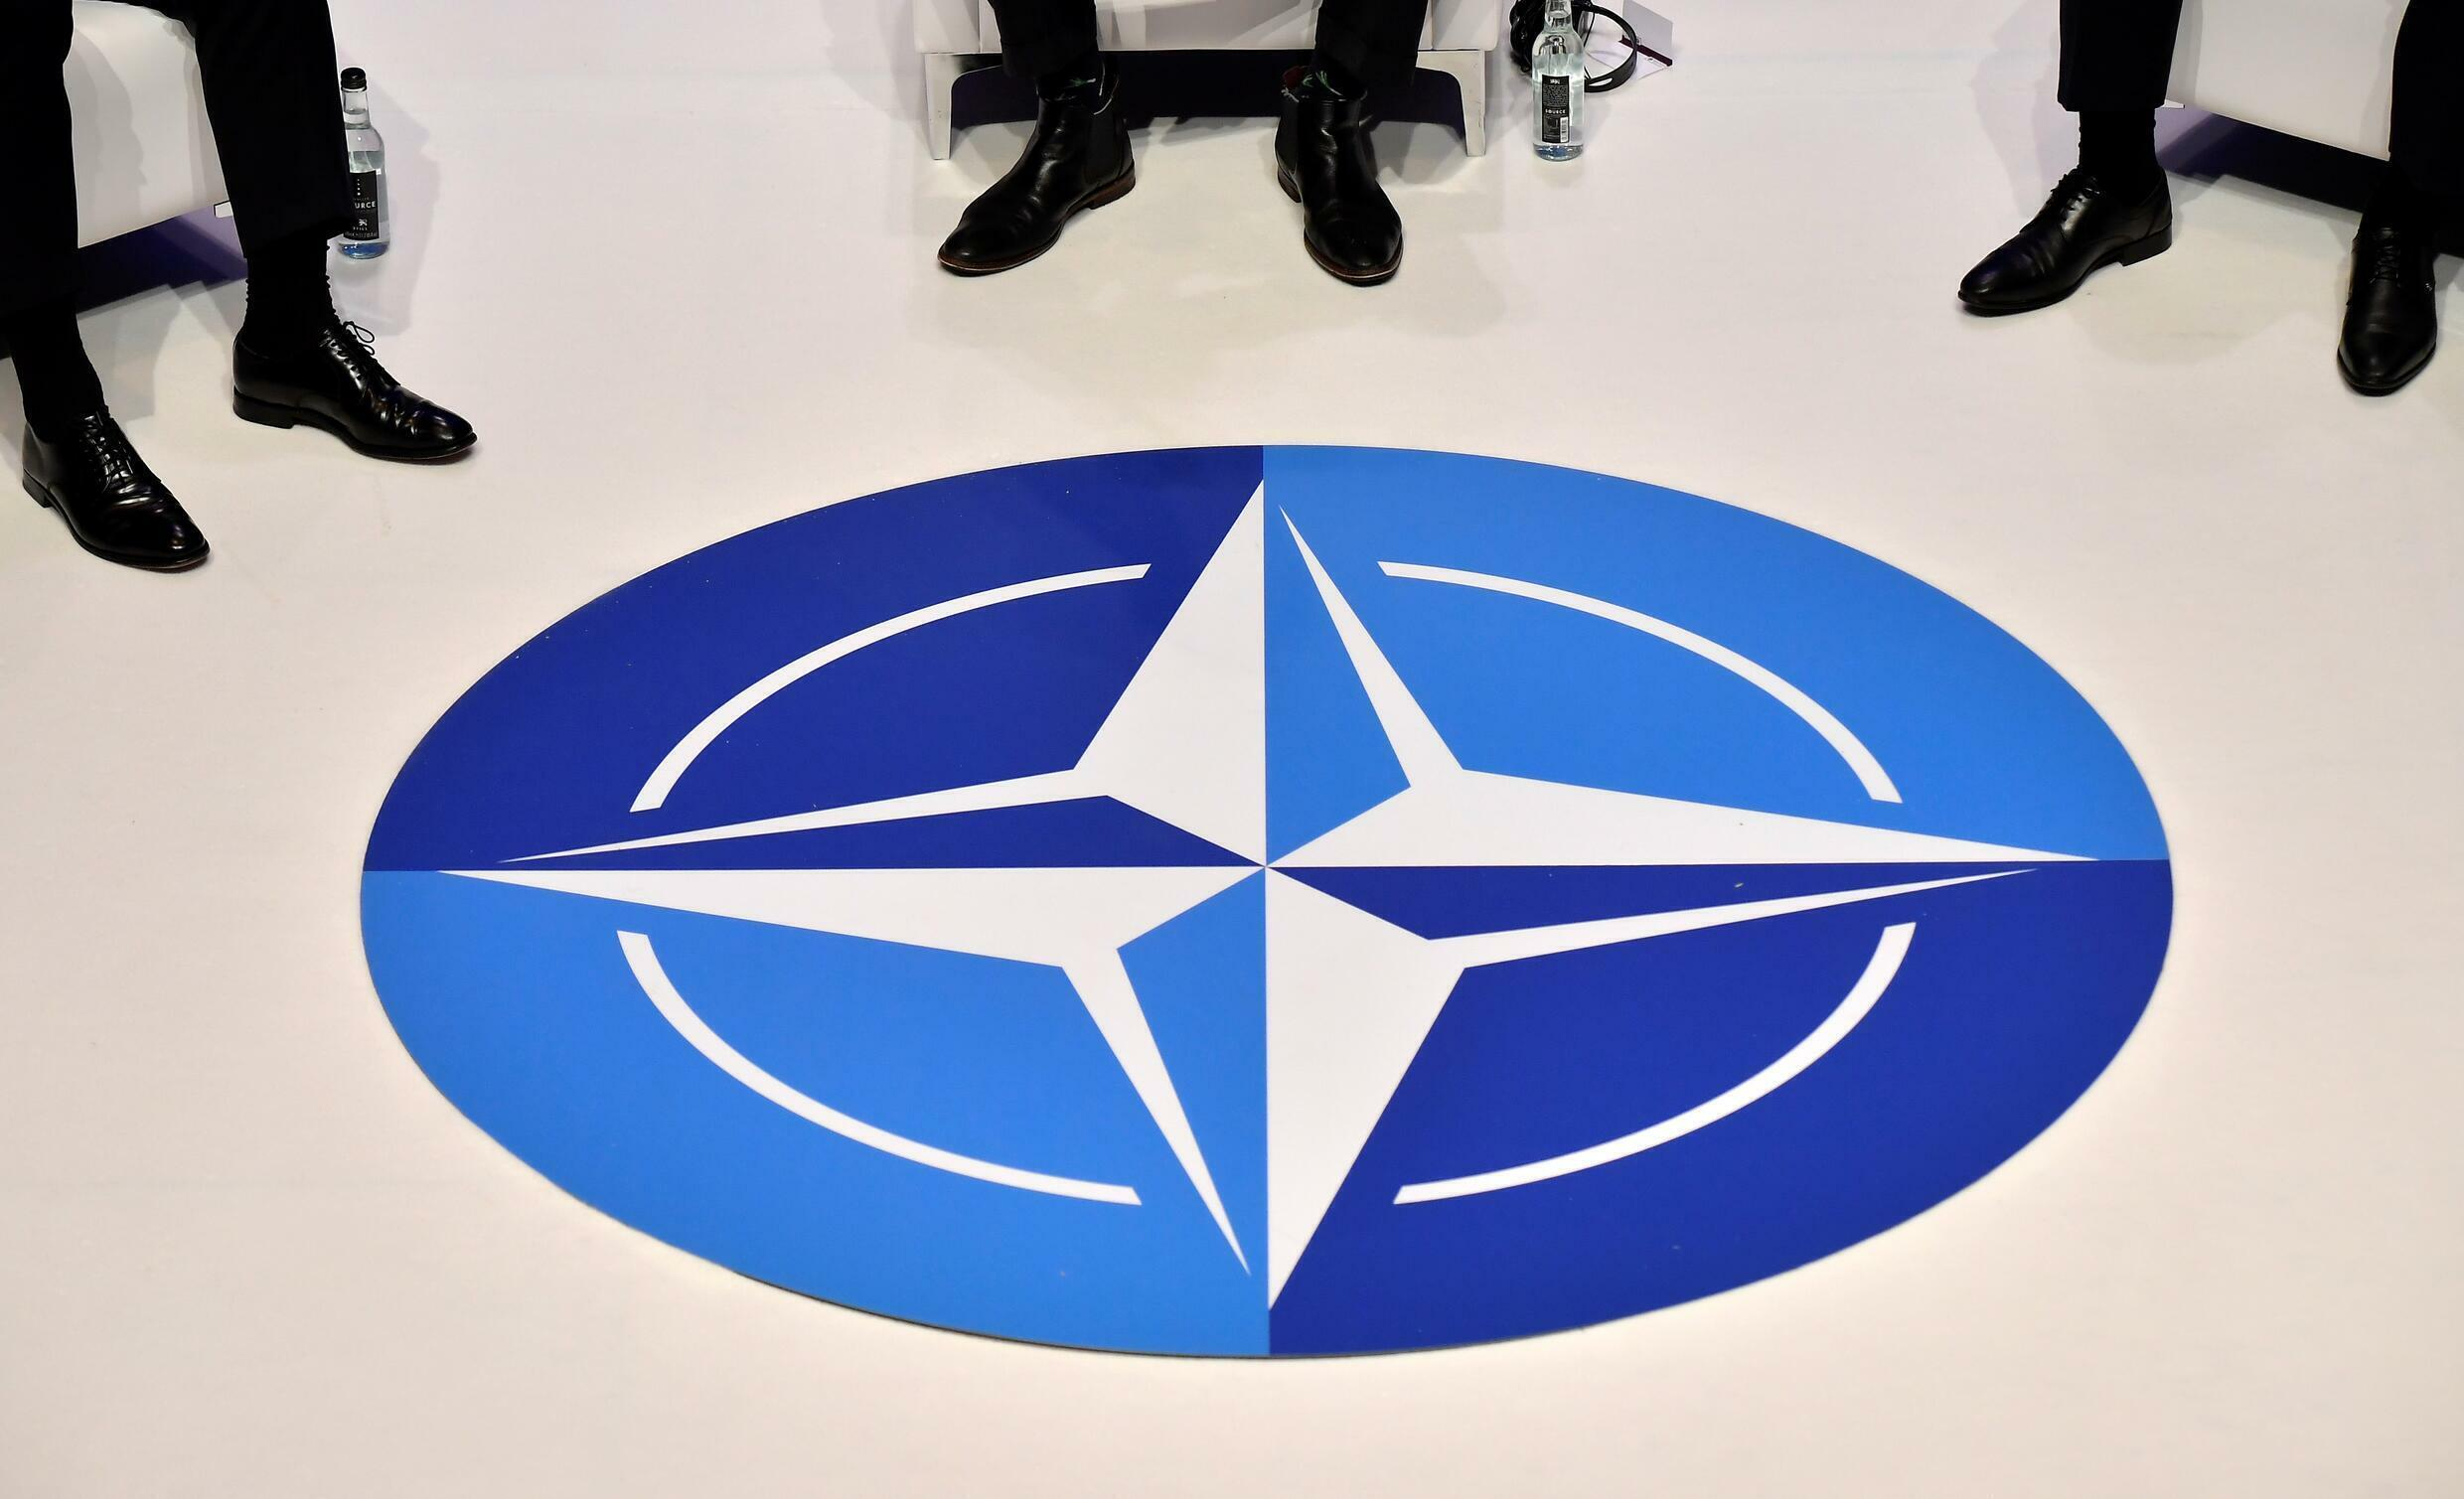 NATO's decision on halving the Russian mission will take effect at the end of the month